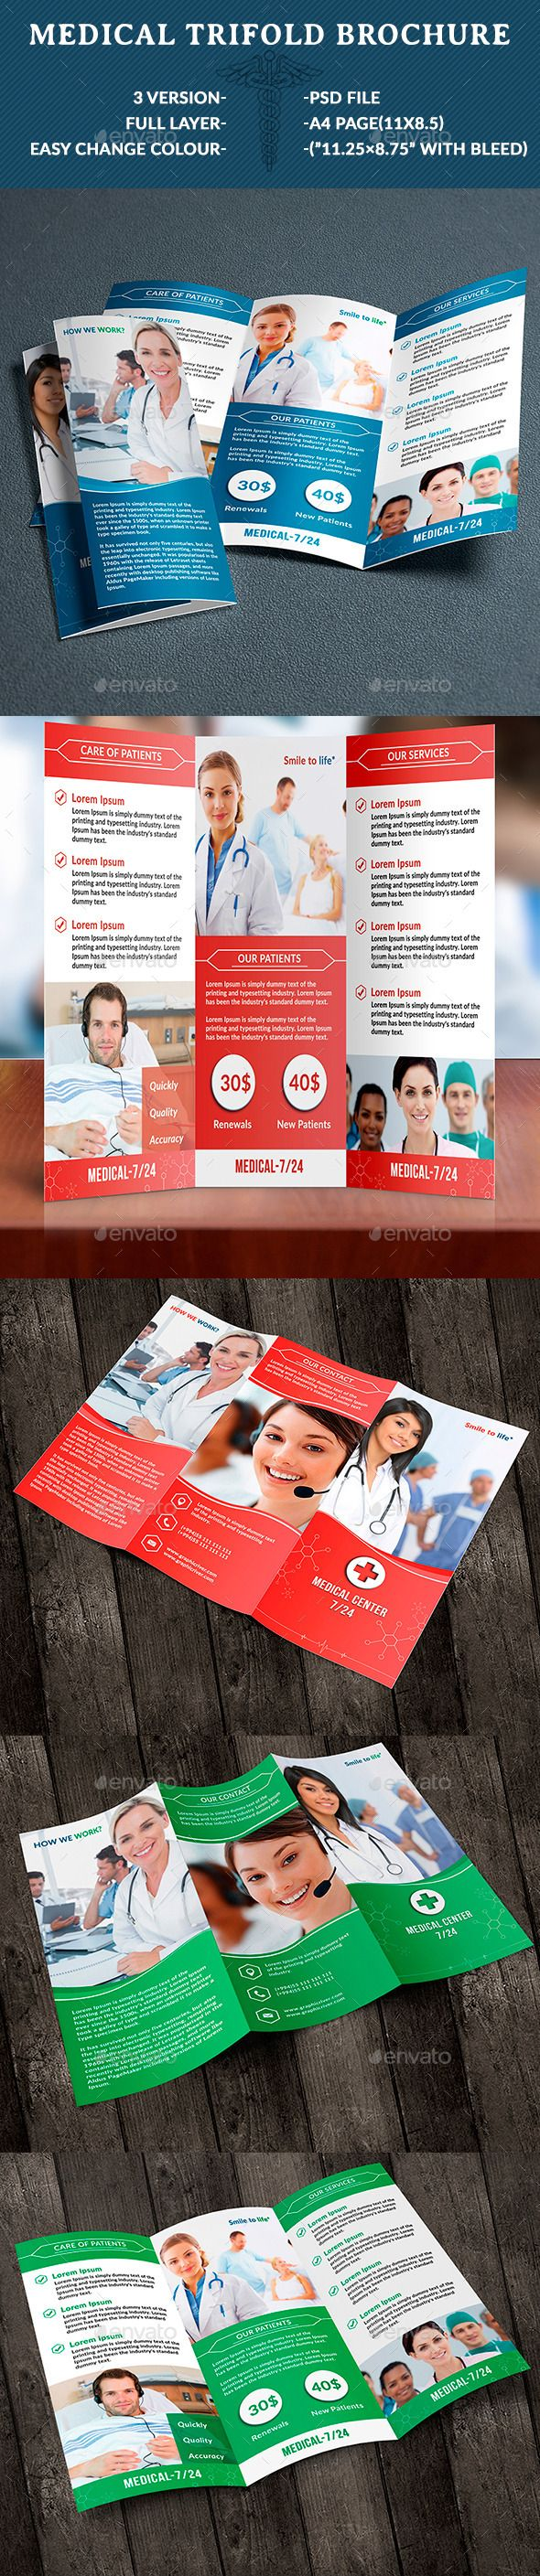 Medical Trifold Brochure  Advertising Brochure Template